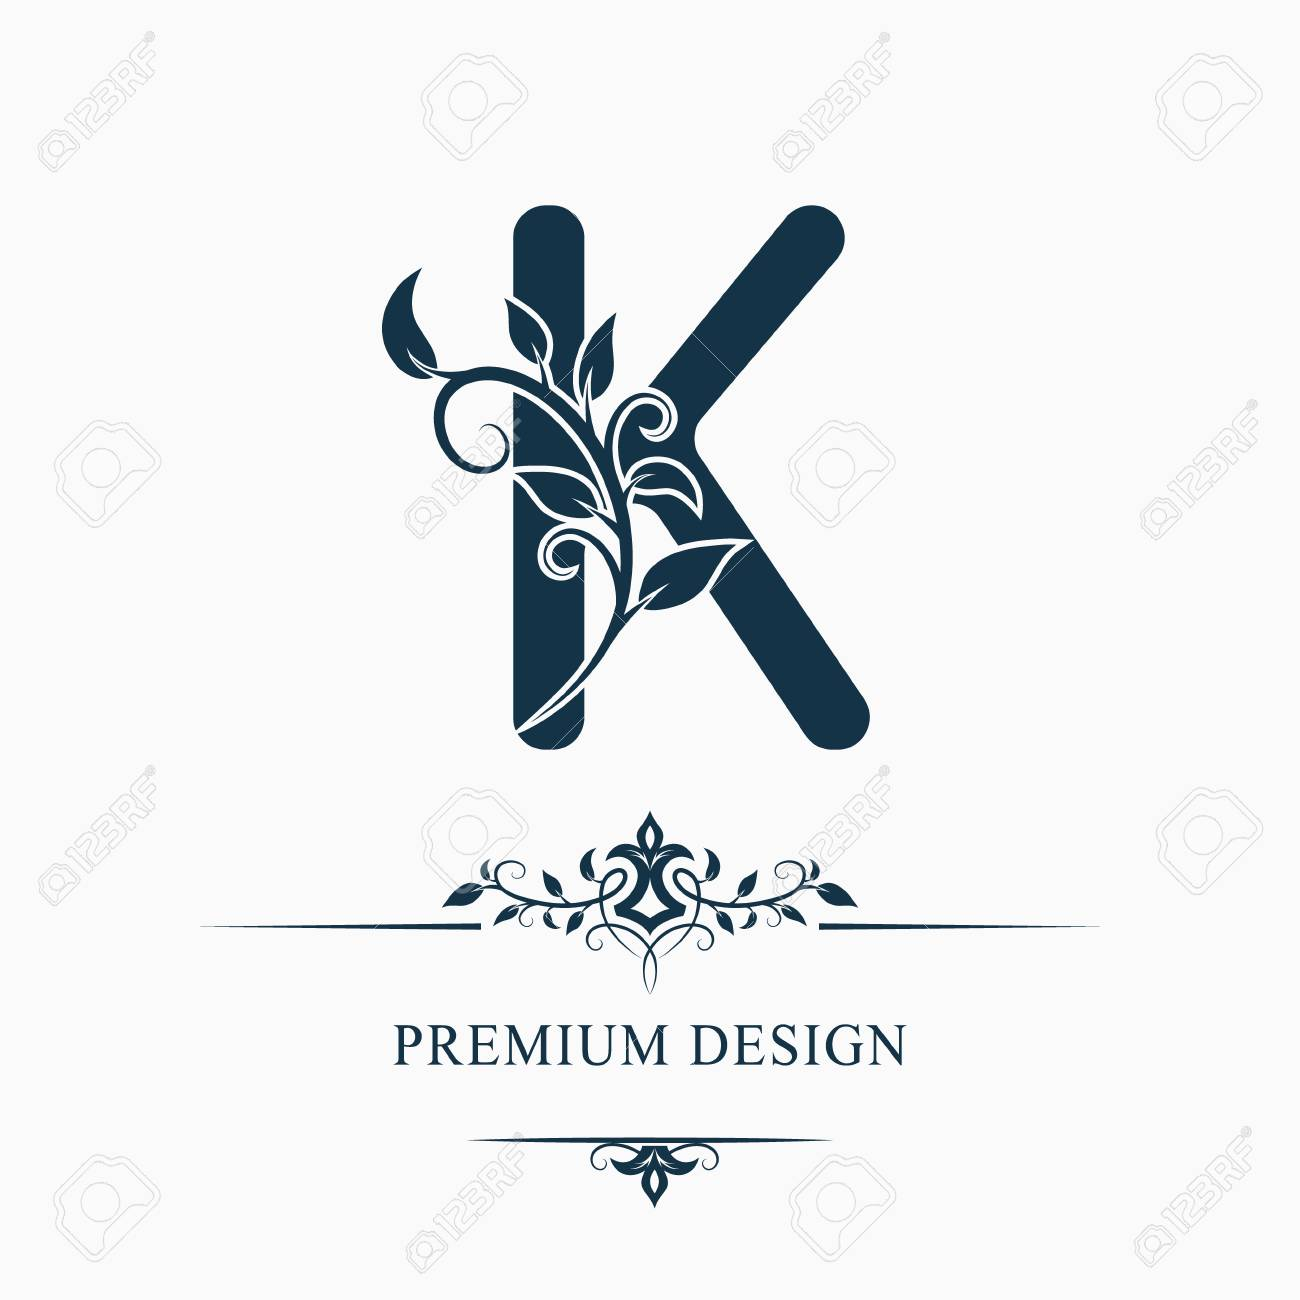 Luxury Capital Letter K Decorative Floral Monogram Branch With